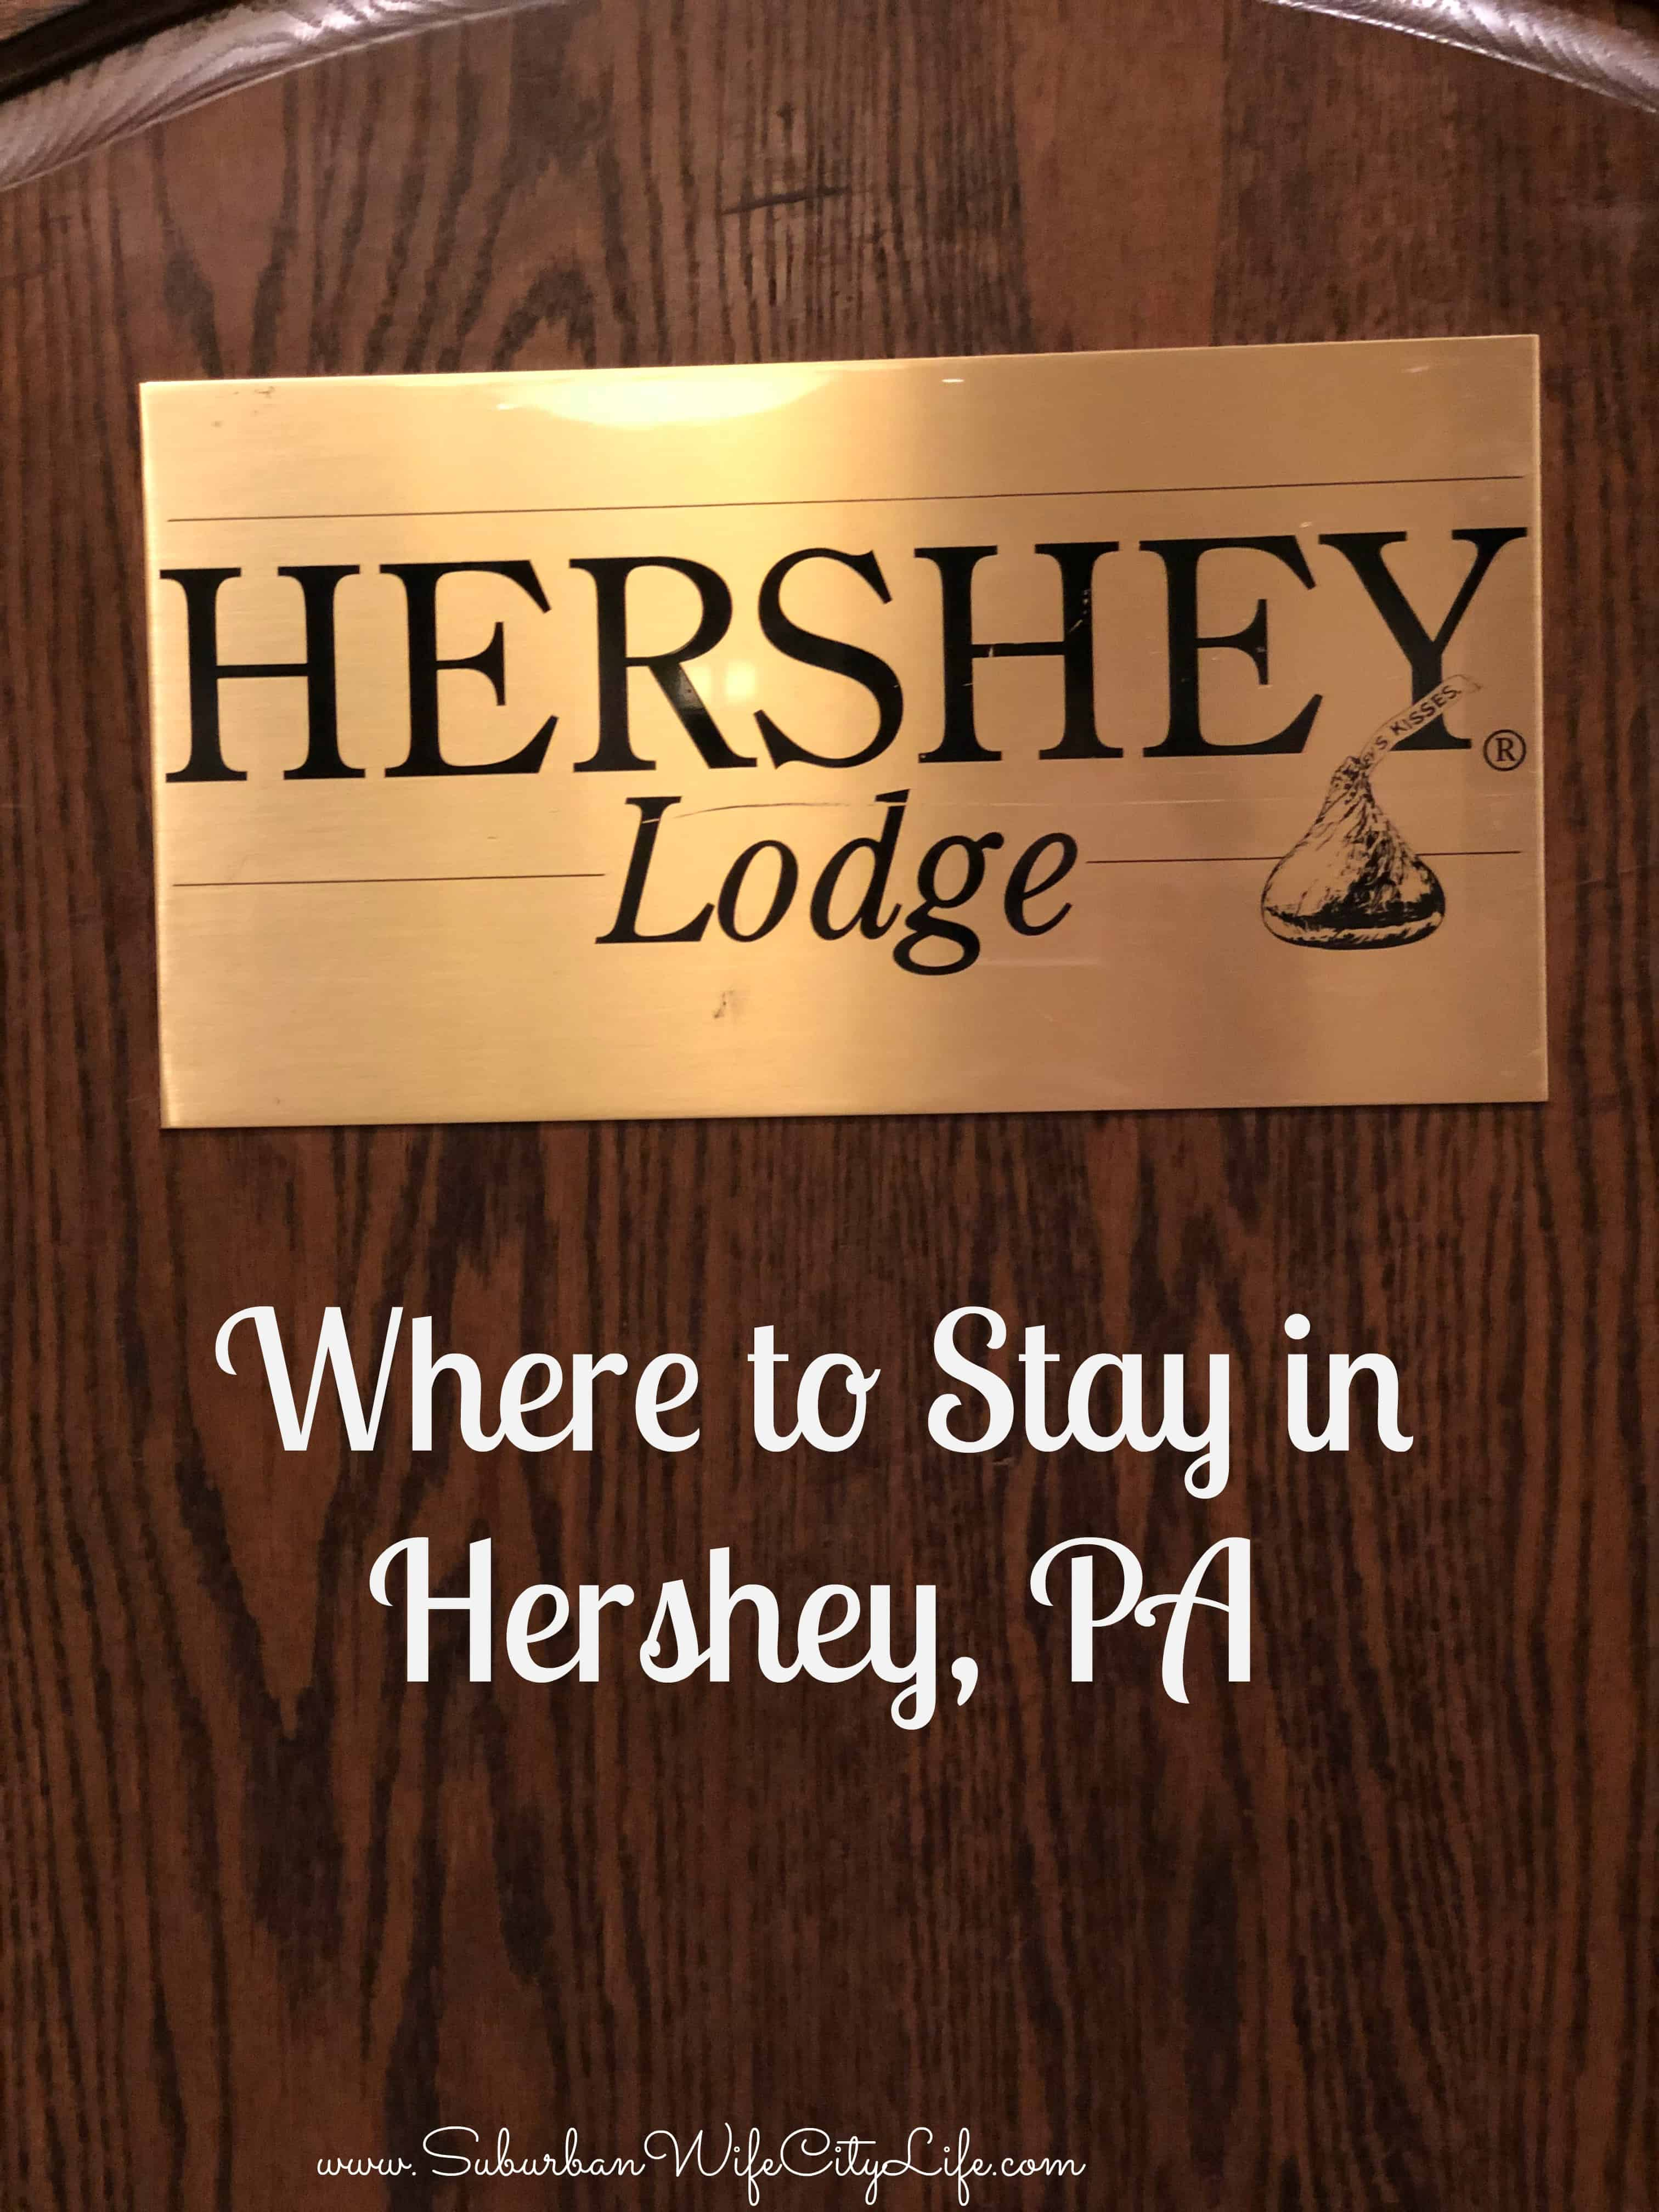 Where to stay in Hershey, PA Hershey Lodge